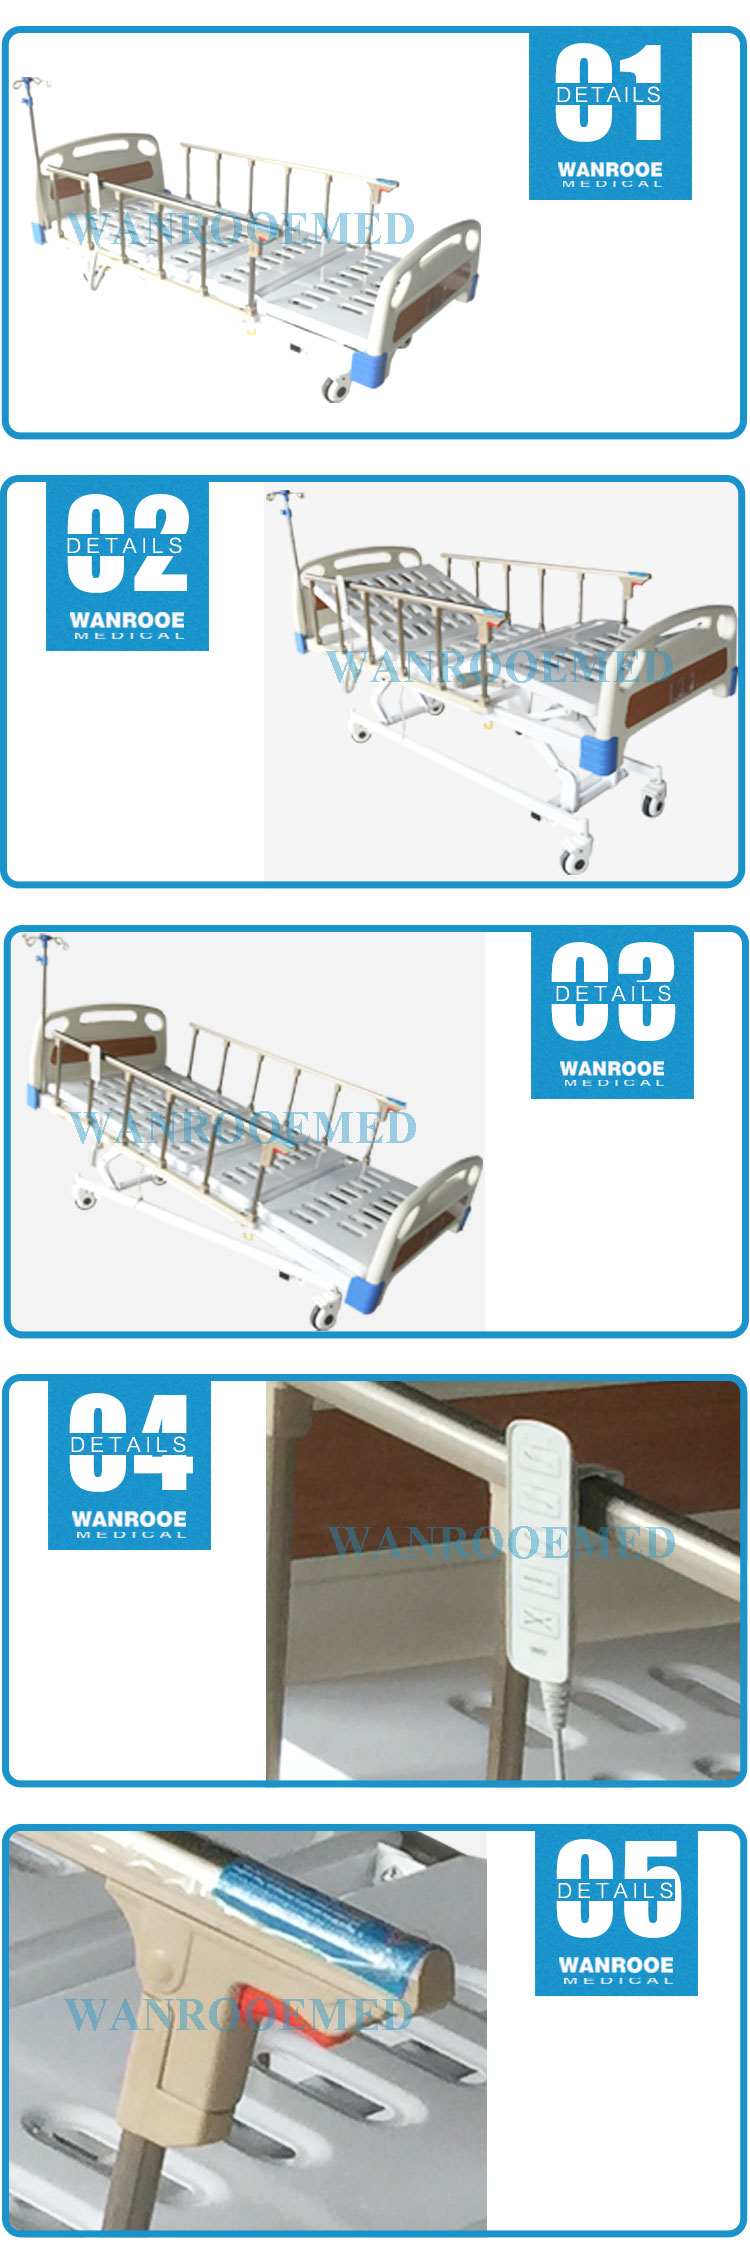 Metal Medical Bed, Hospital Metal Bed, Electric Medical Bed, 5 Function Electric Bed, Hospital Bed With Wheels